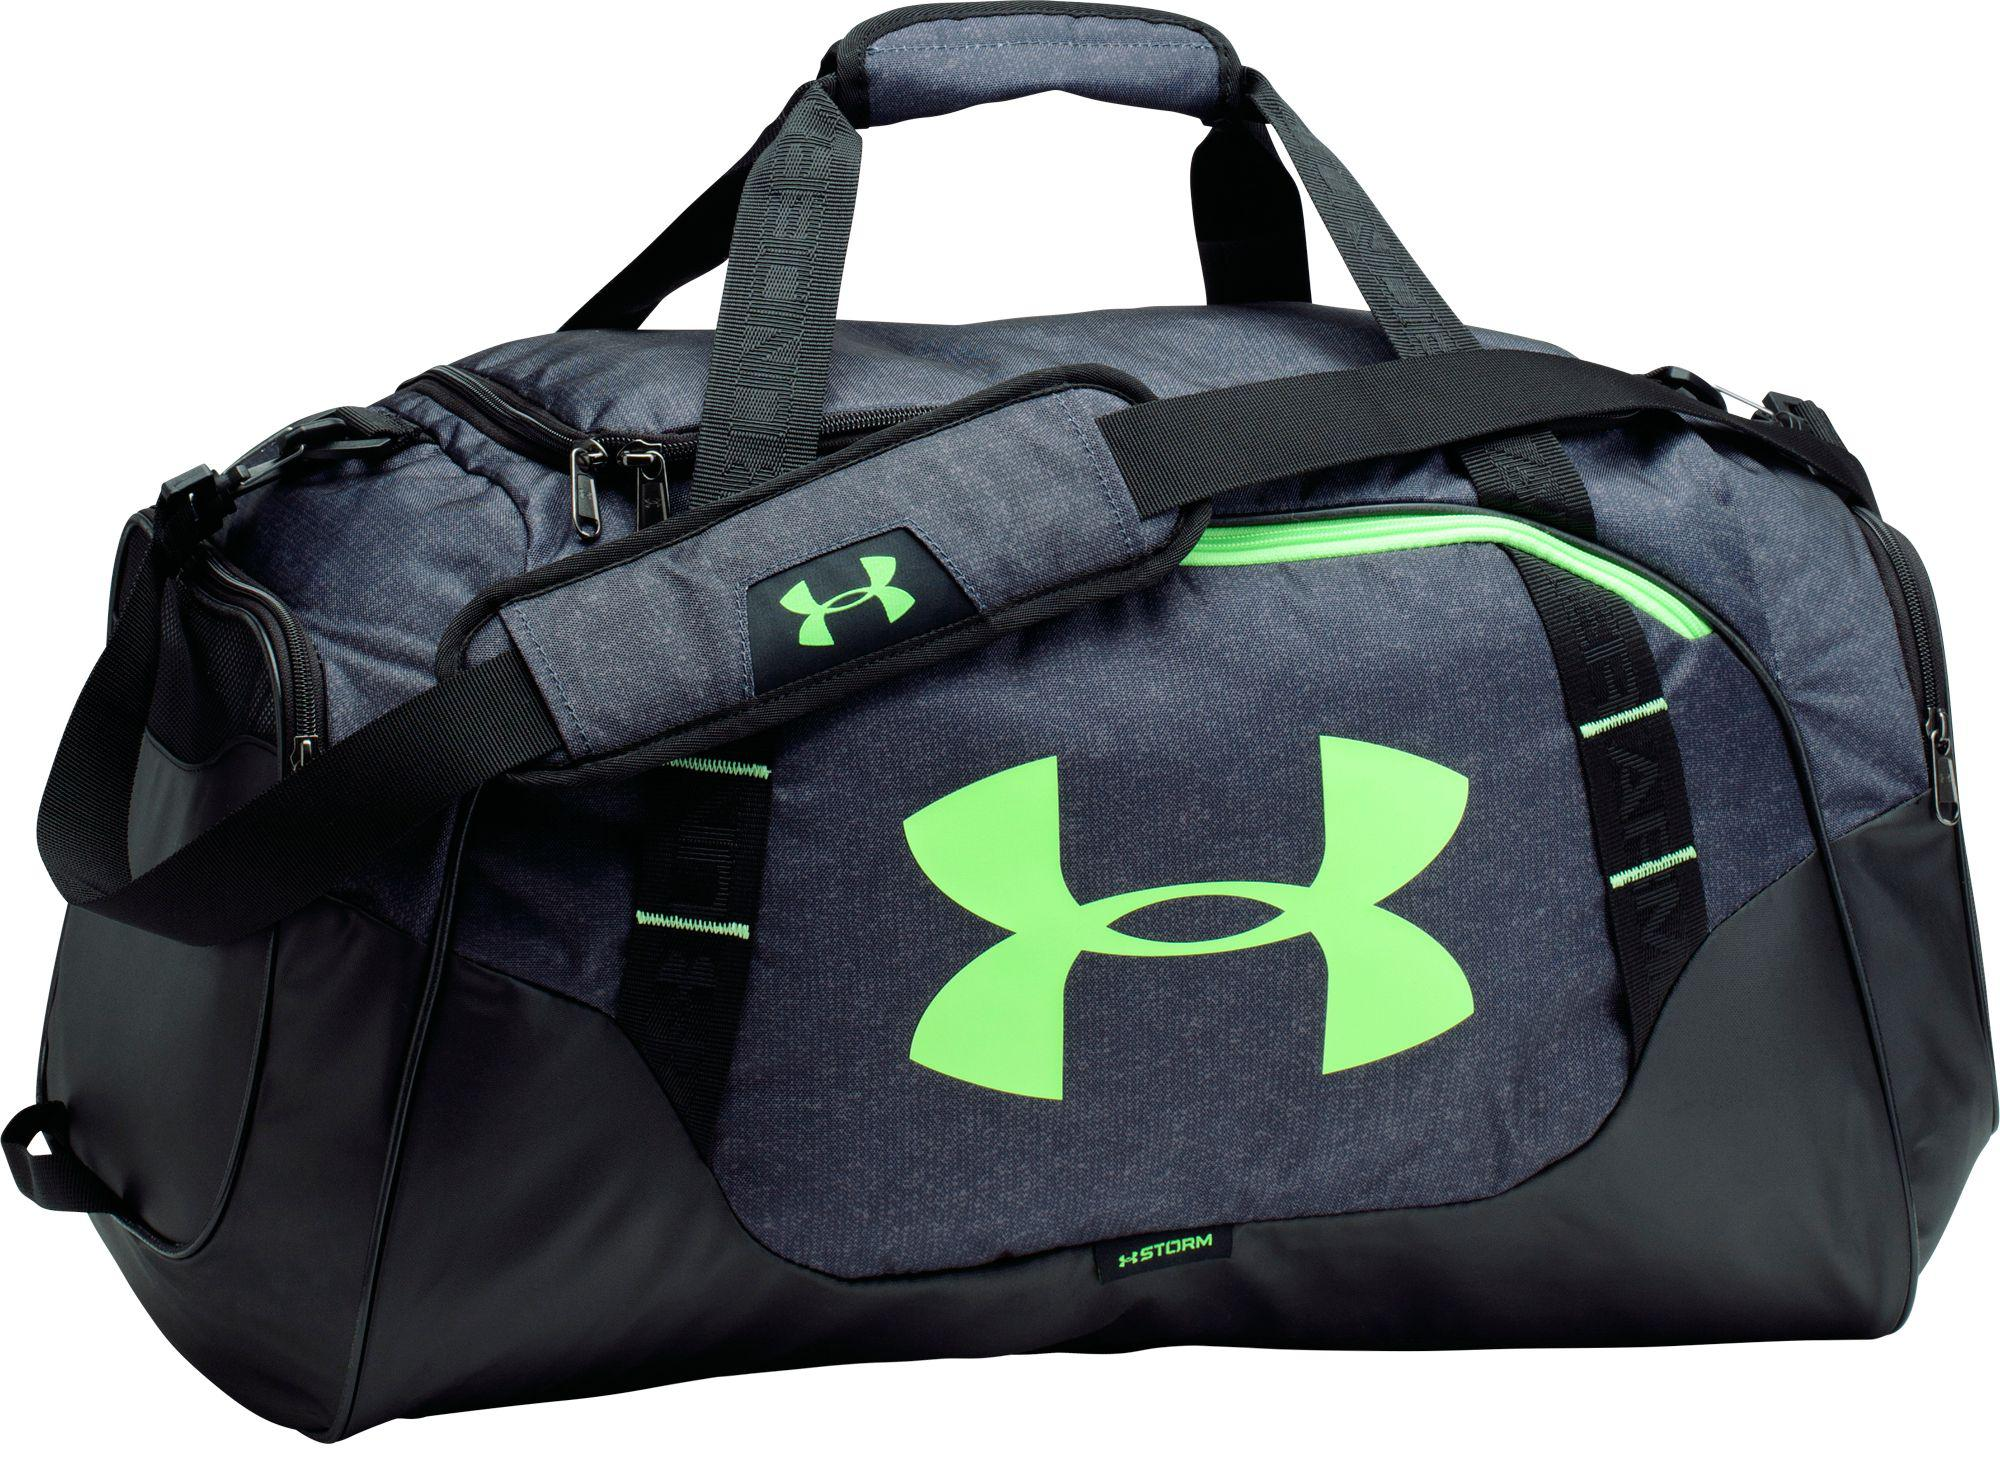 ce254633f120 Lyst - Under Armour Undeniable 3.0 Medium Duffle Bag in Blue for Men